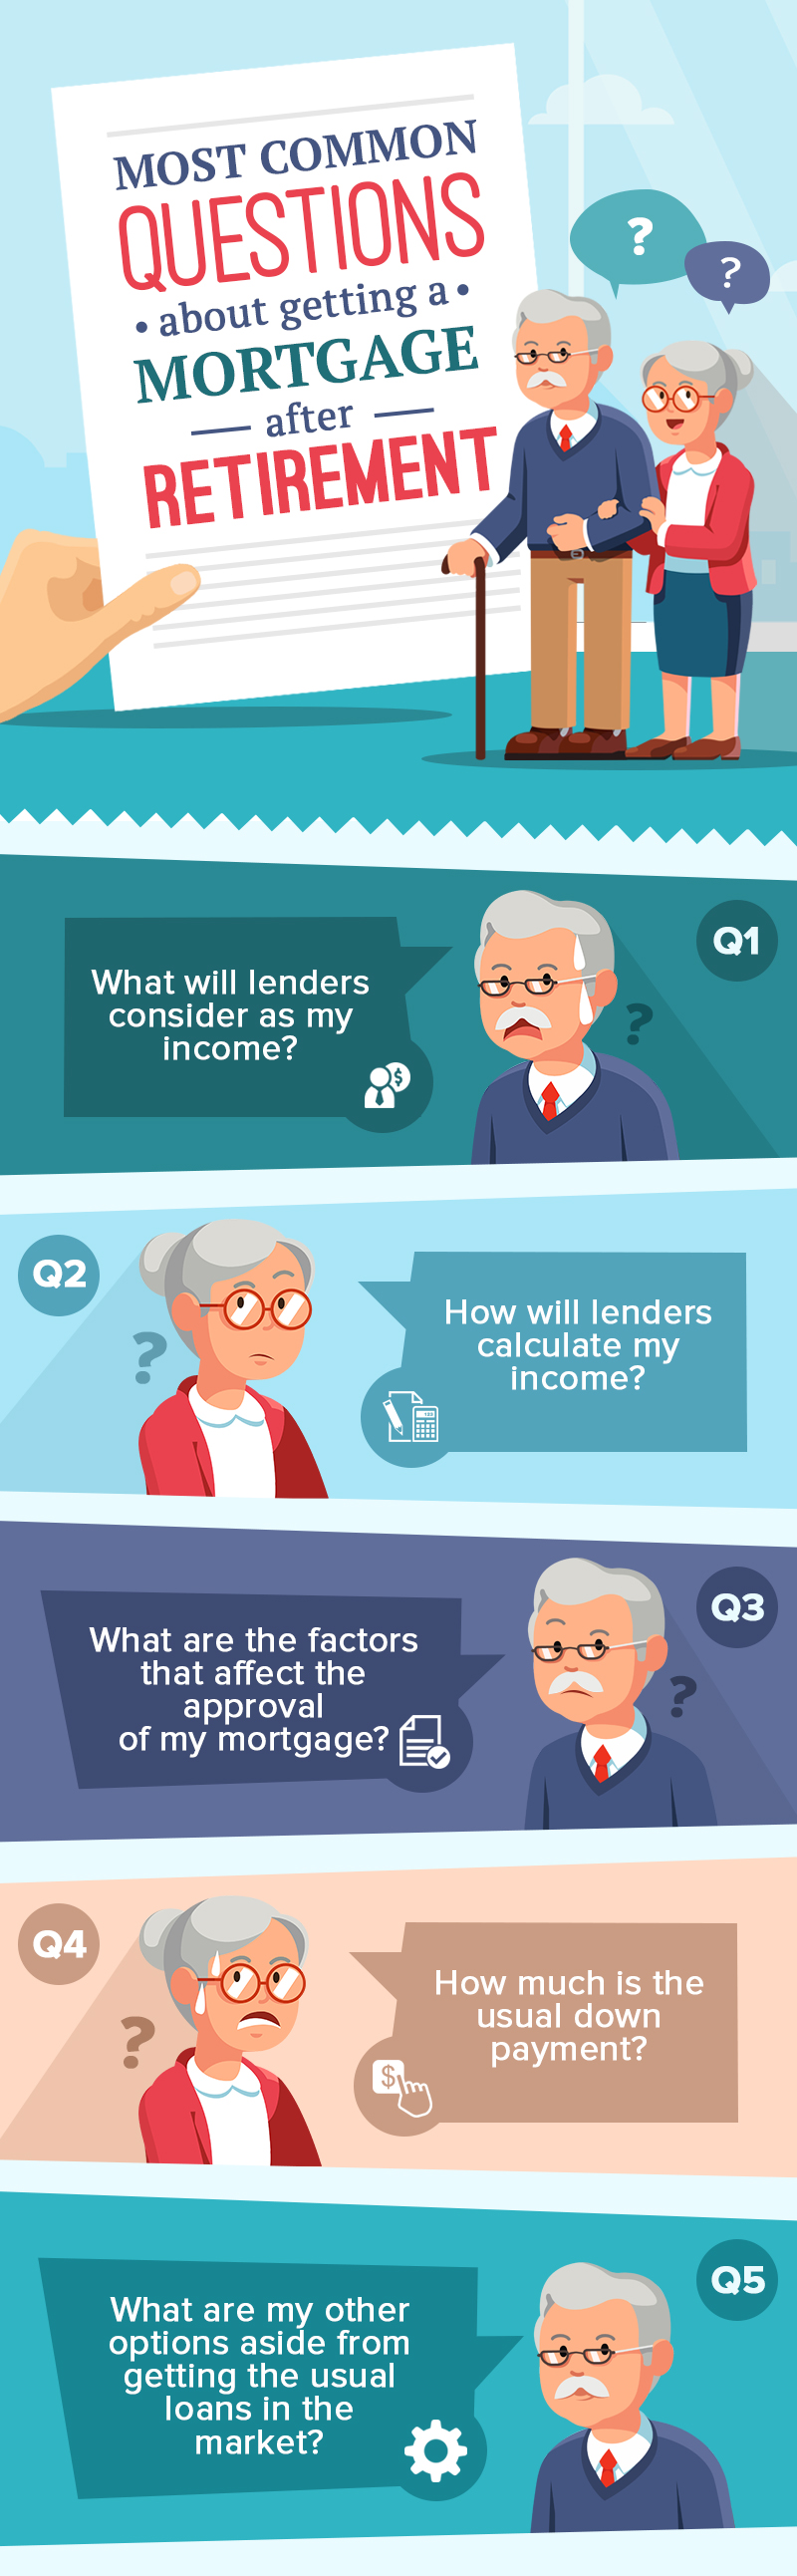 Getting A Mortgage After Retirement